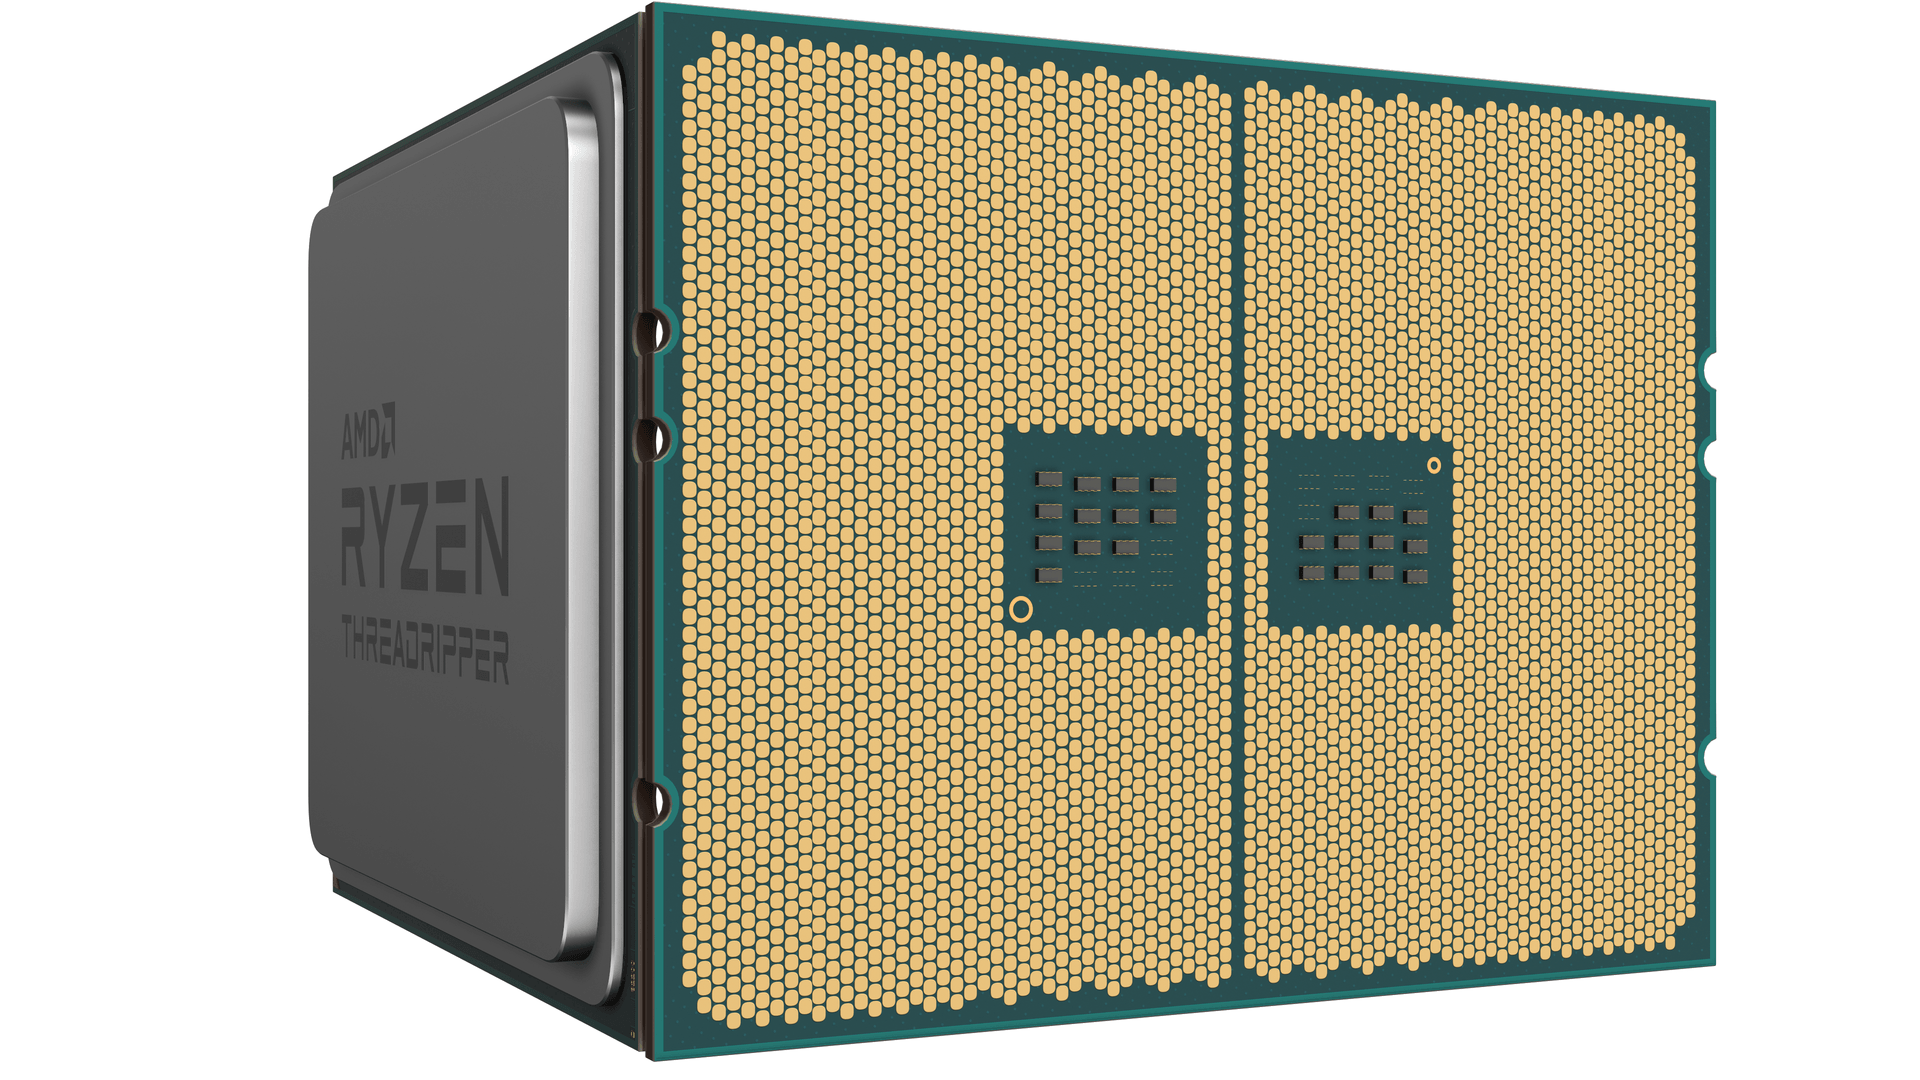 amd-ryzen-threadripper-2000-pouzdro-tr4-1600